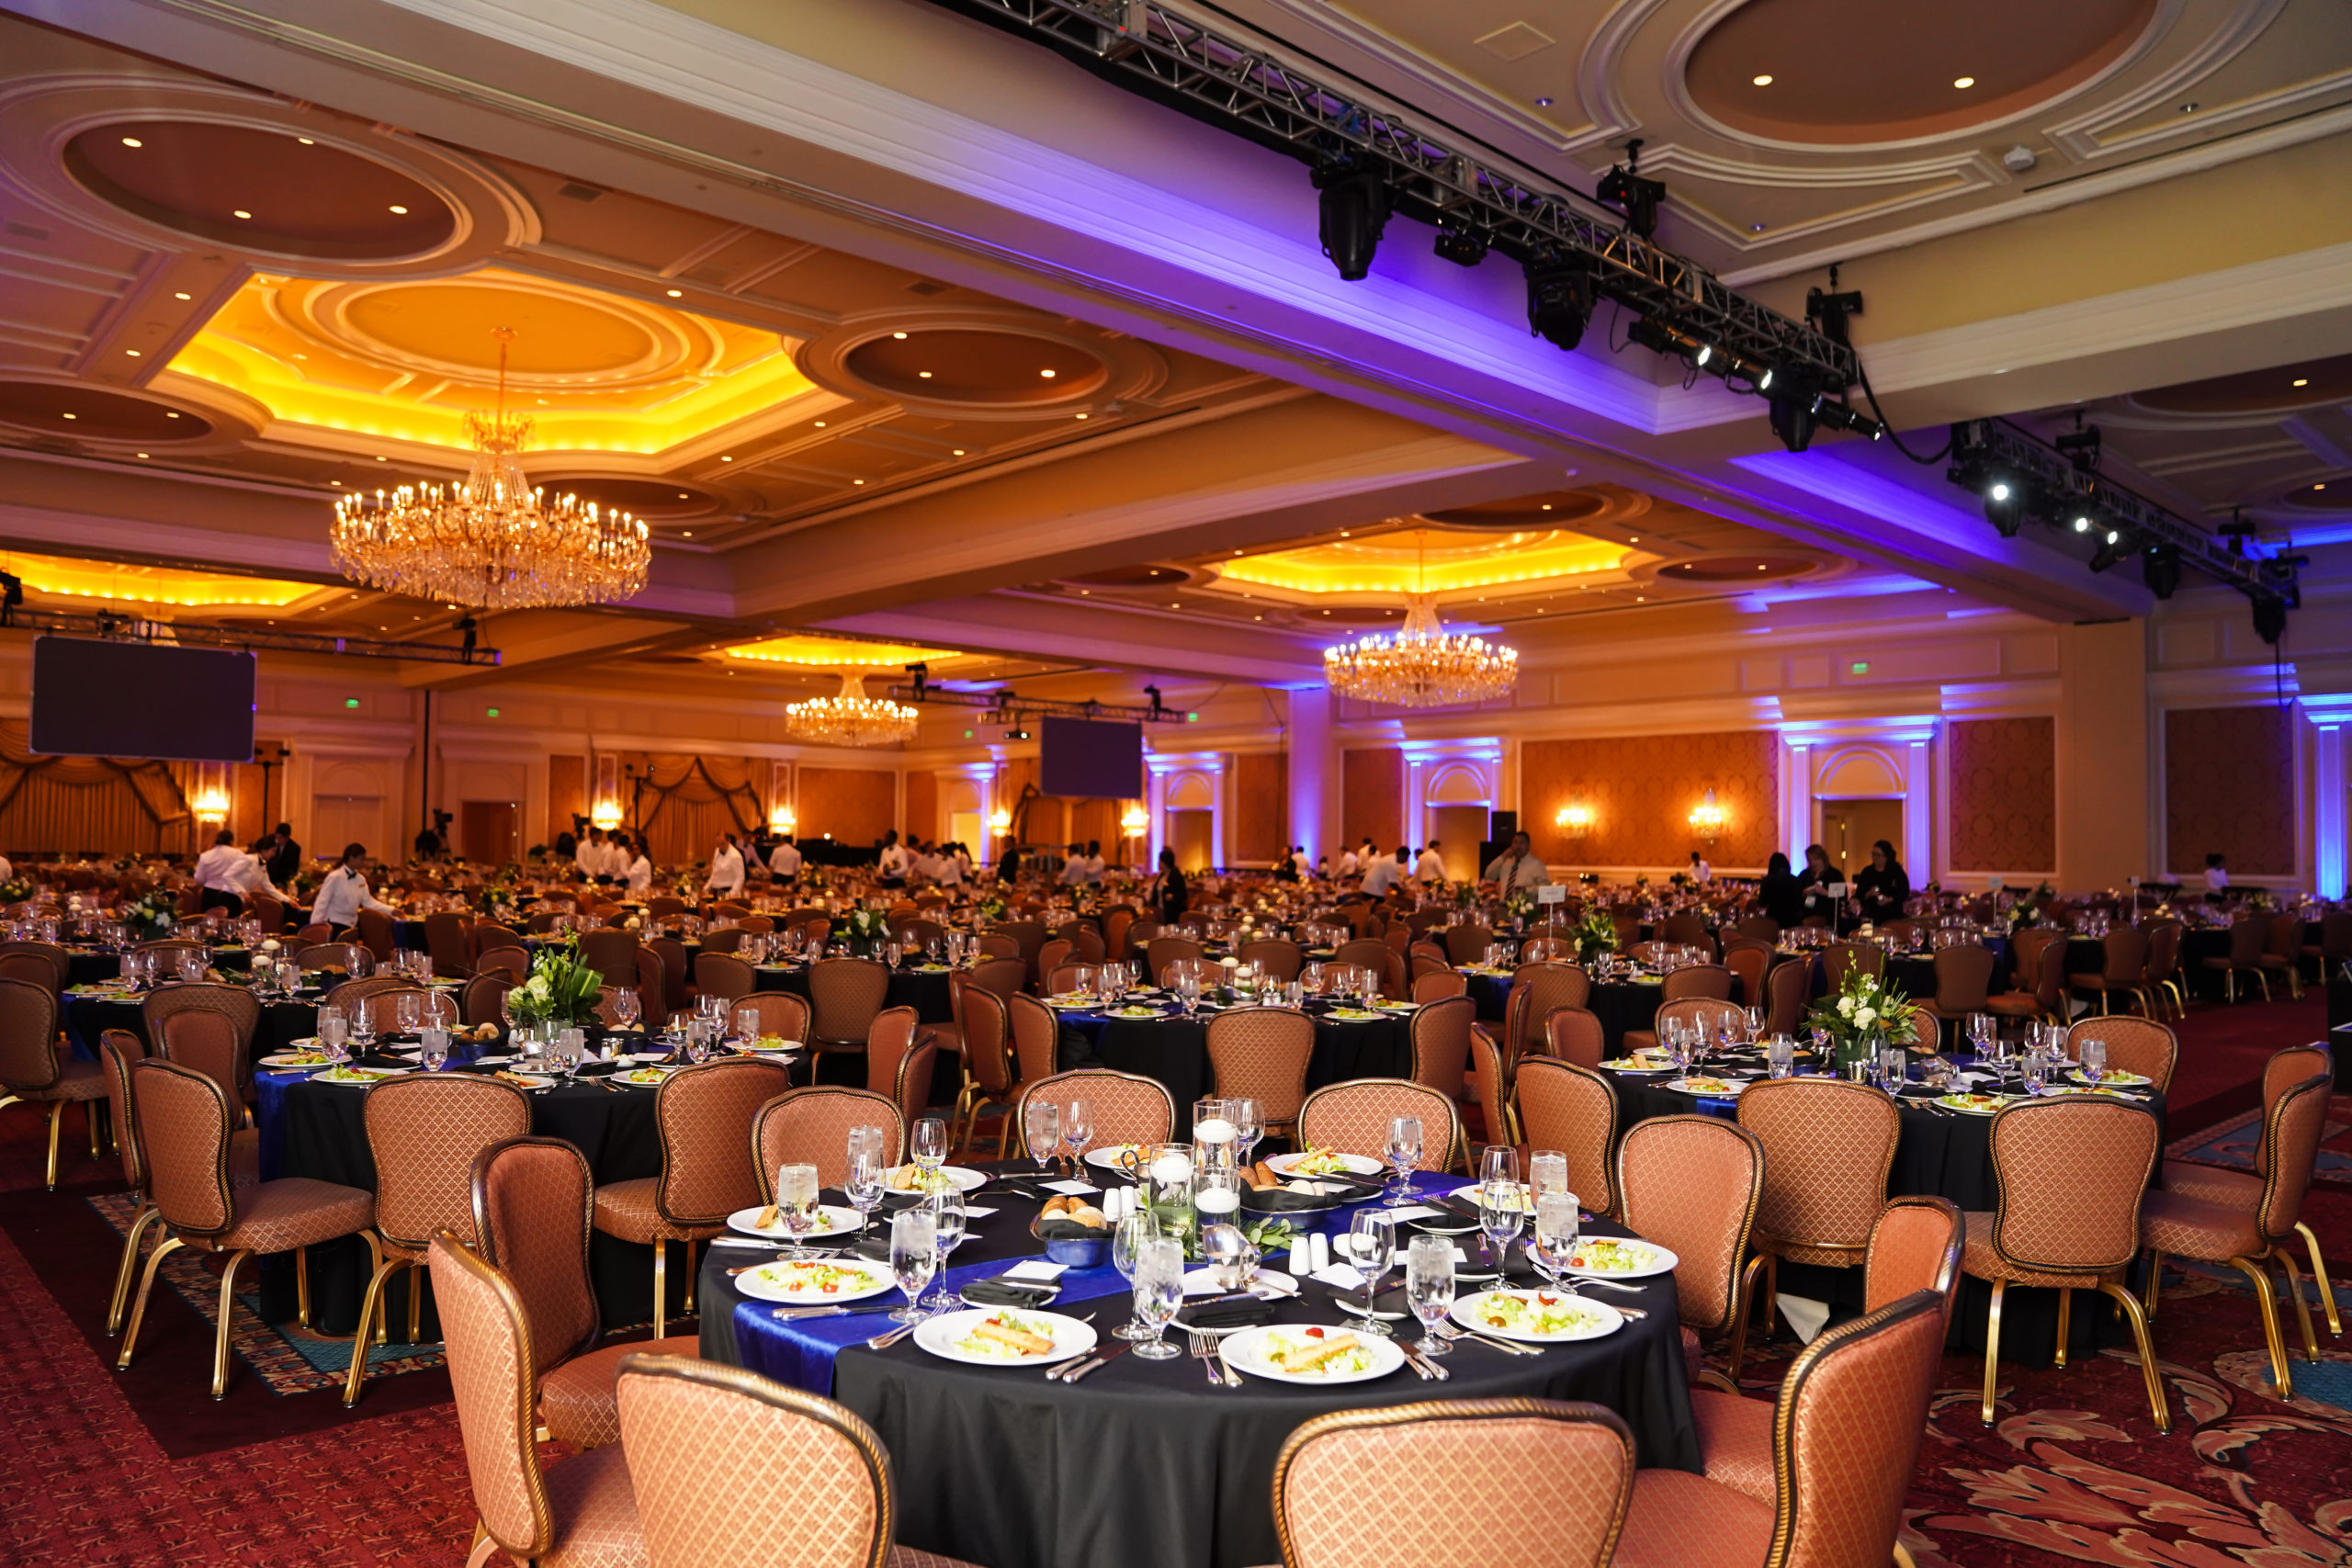 The Grand Ballroom set up for a large-scale event held at The Grand America Hotel.